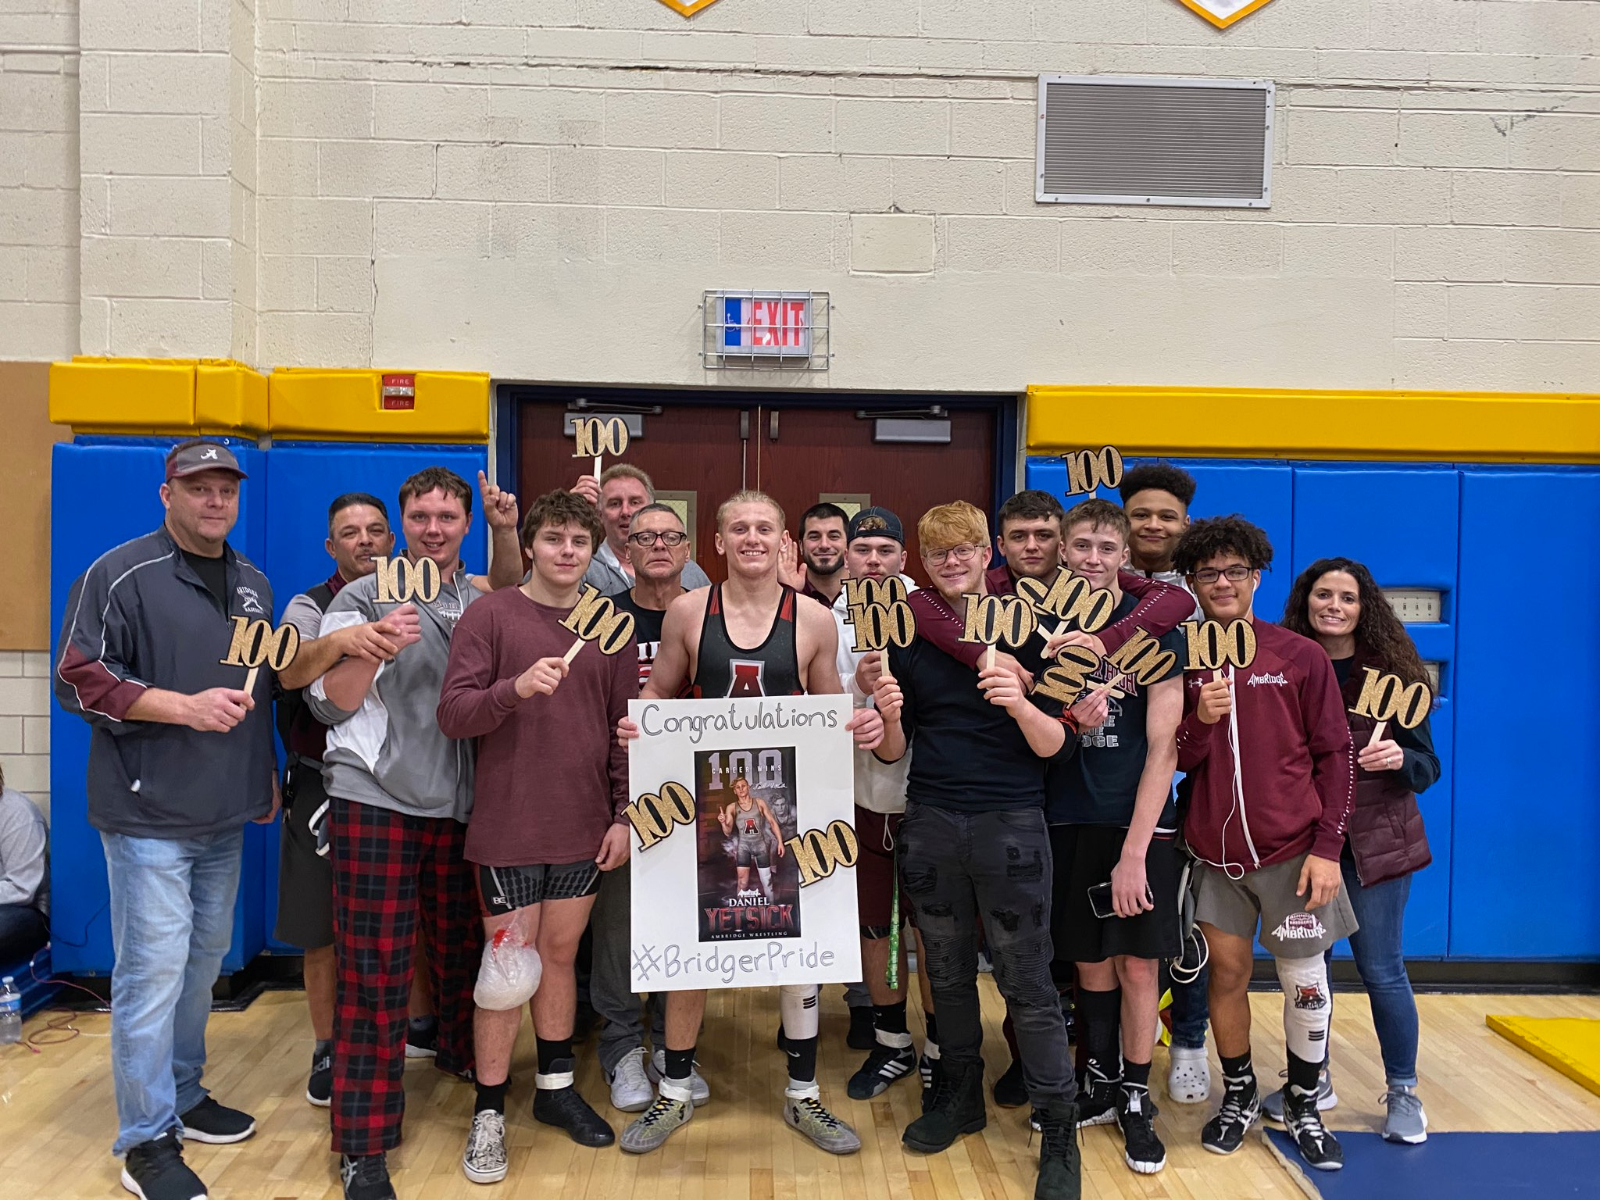 Daniel Yetsick scores his 100th win for the Bridger wrestling team